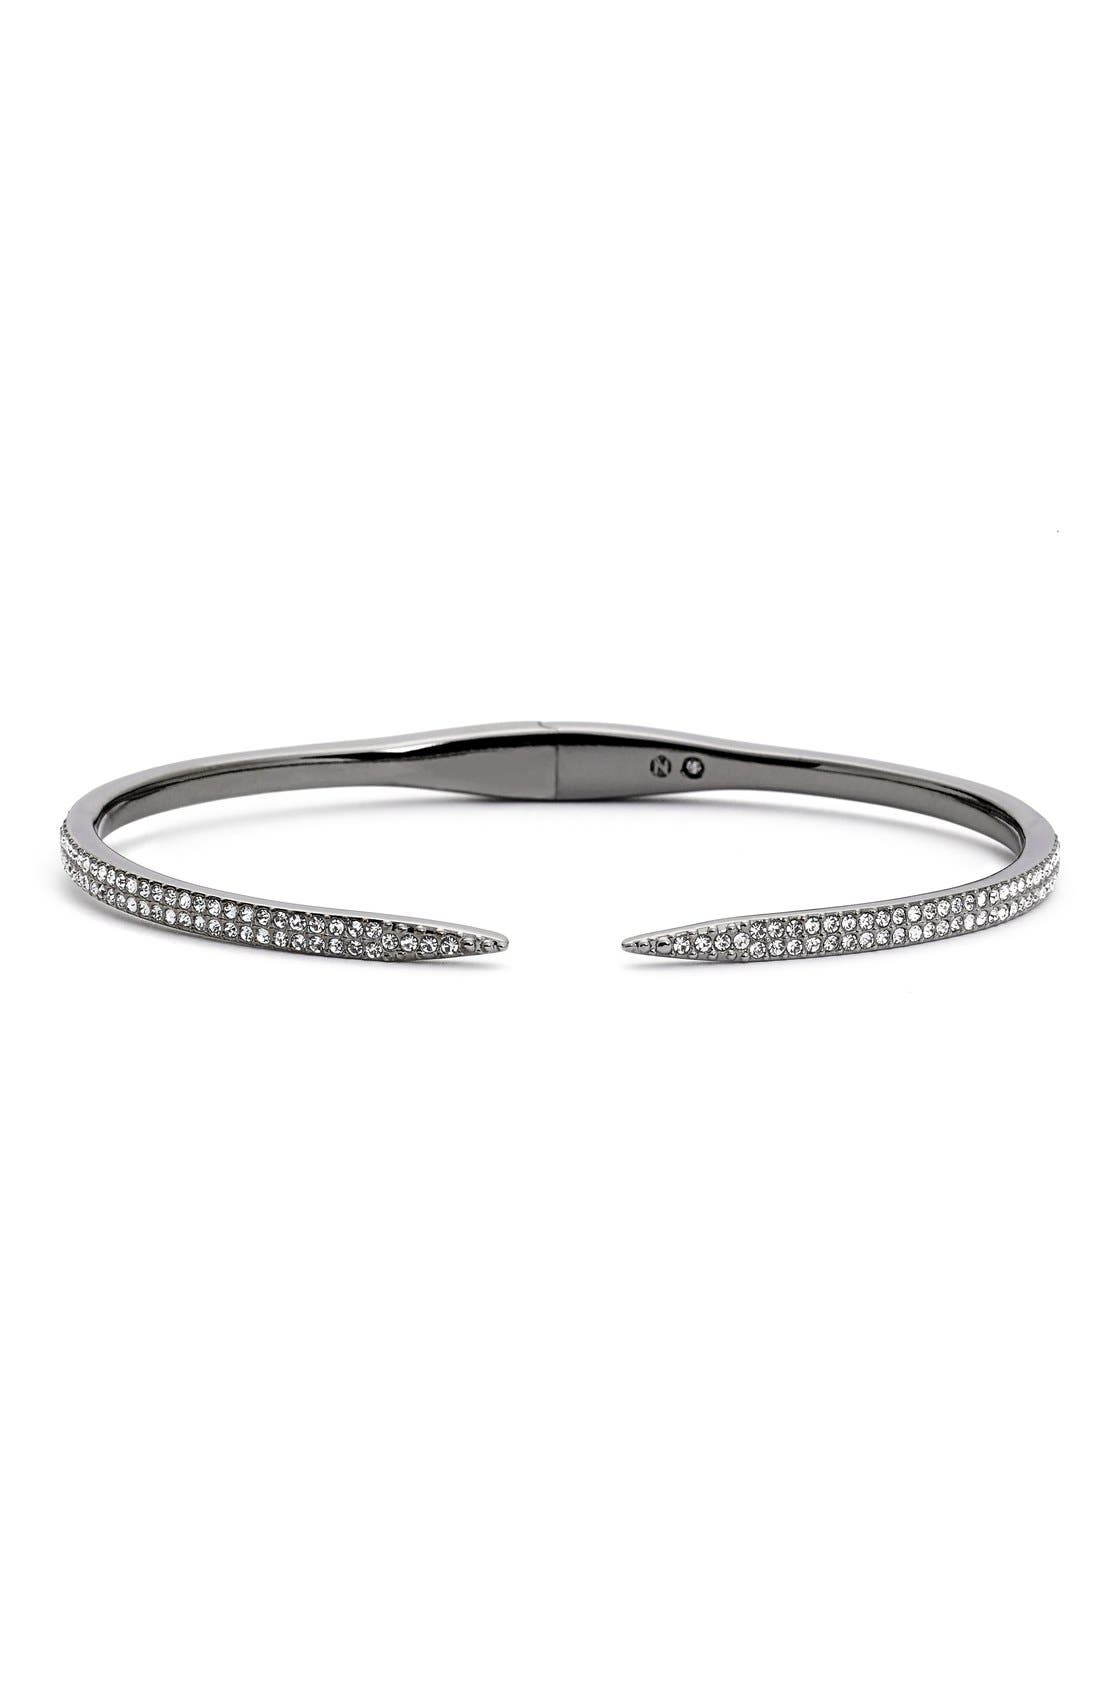 Nadri 'Tattoo' Pavé Hinge Bangle